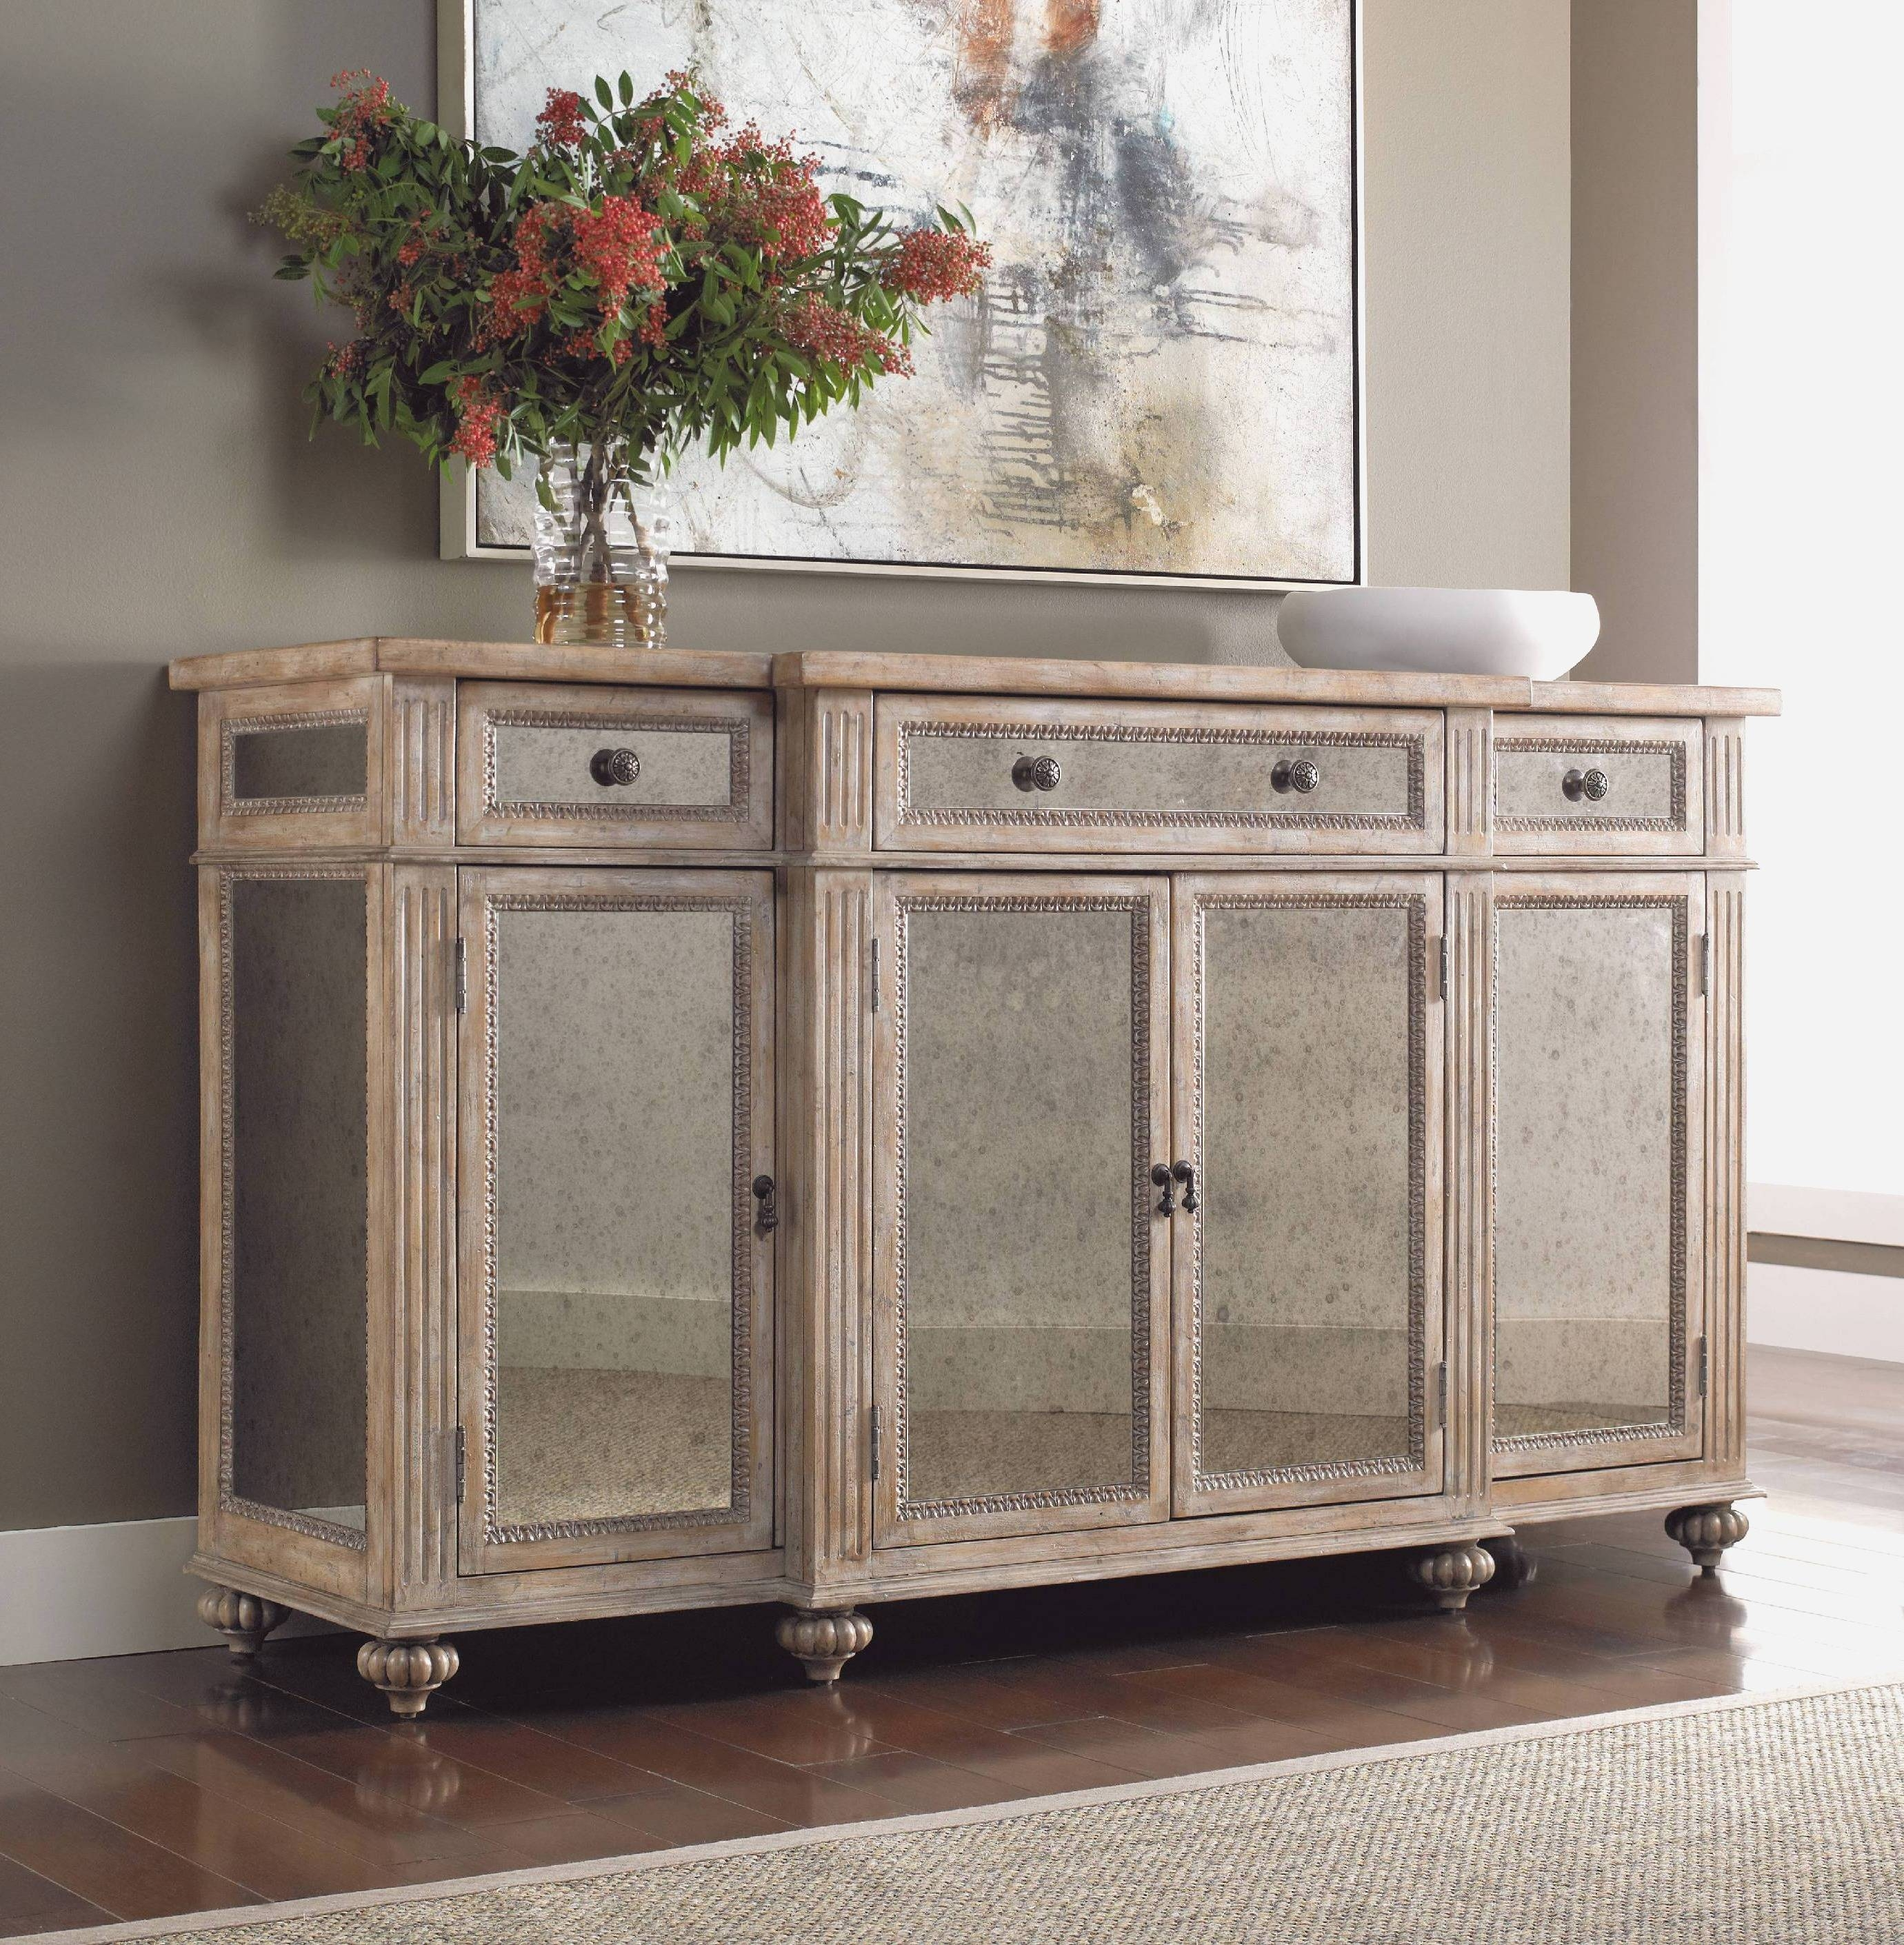 Cheap Sideboards And Buffets: Cheap Sideboards And Buffets Best Inside Elegant Sideboards (View 4 of 15)